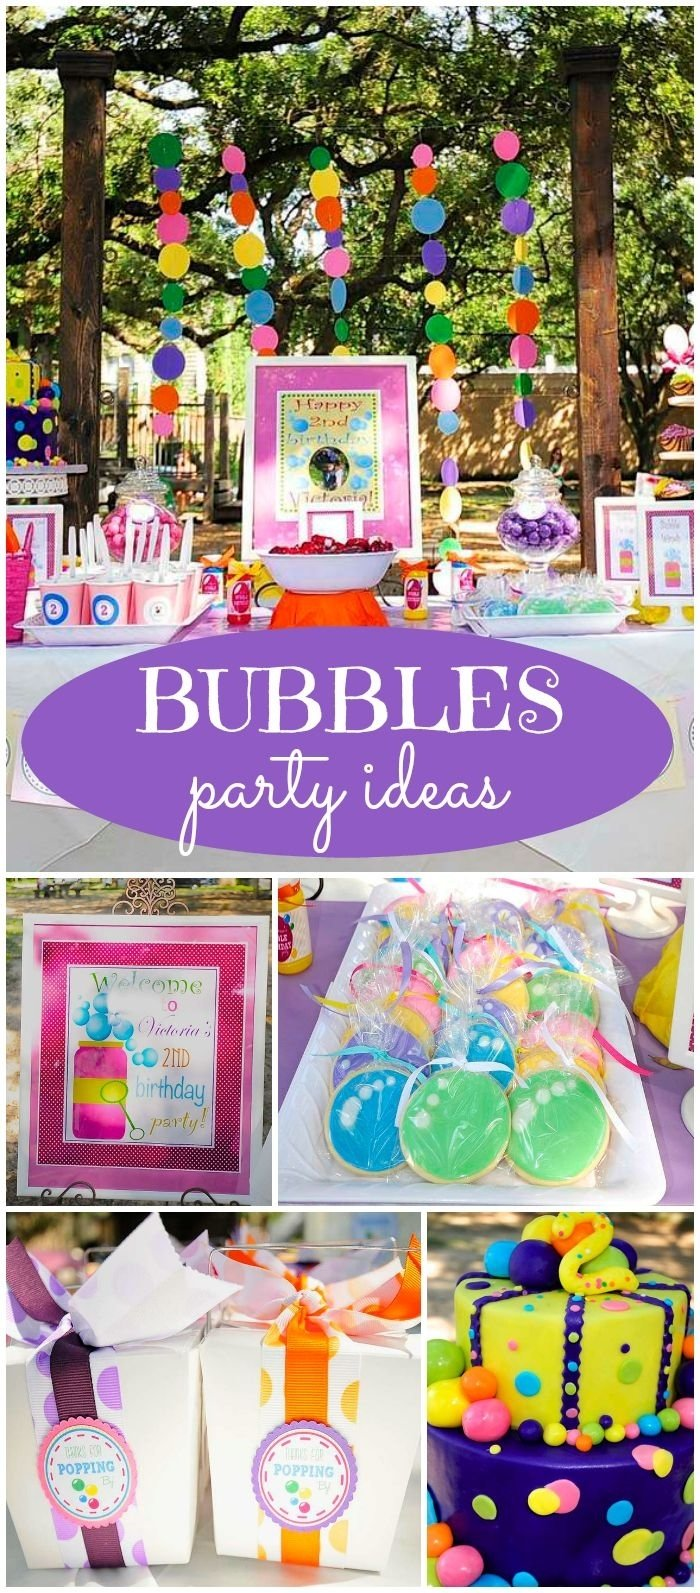 10 Spectacular Toddler Girl Birthday Party Ideas 2nd birthday party themes tags 2nd birthday party themes unique 1 2020